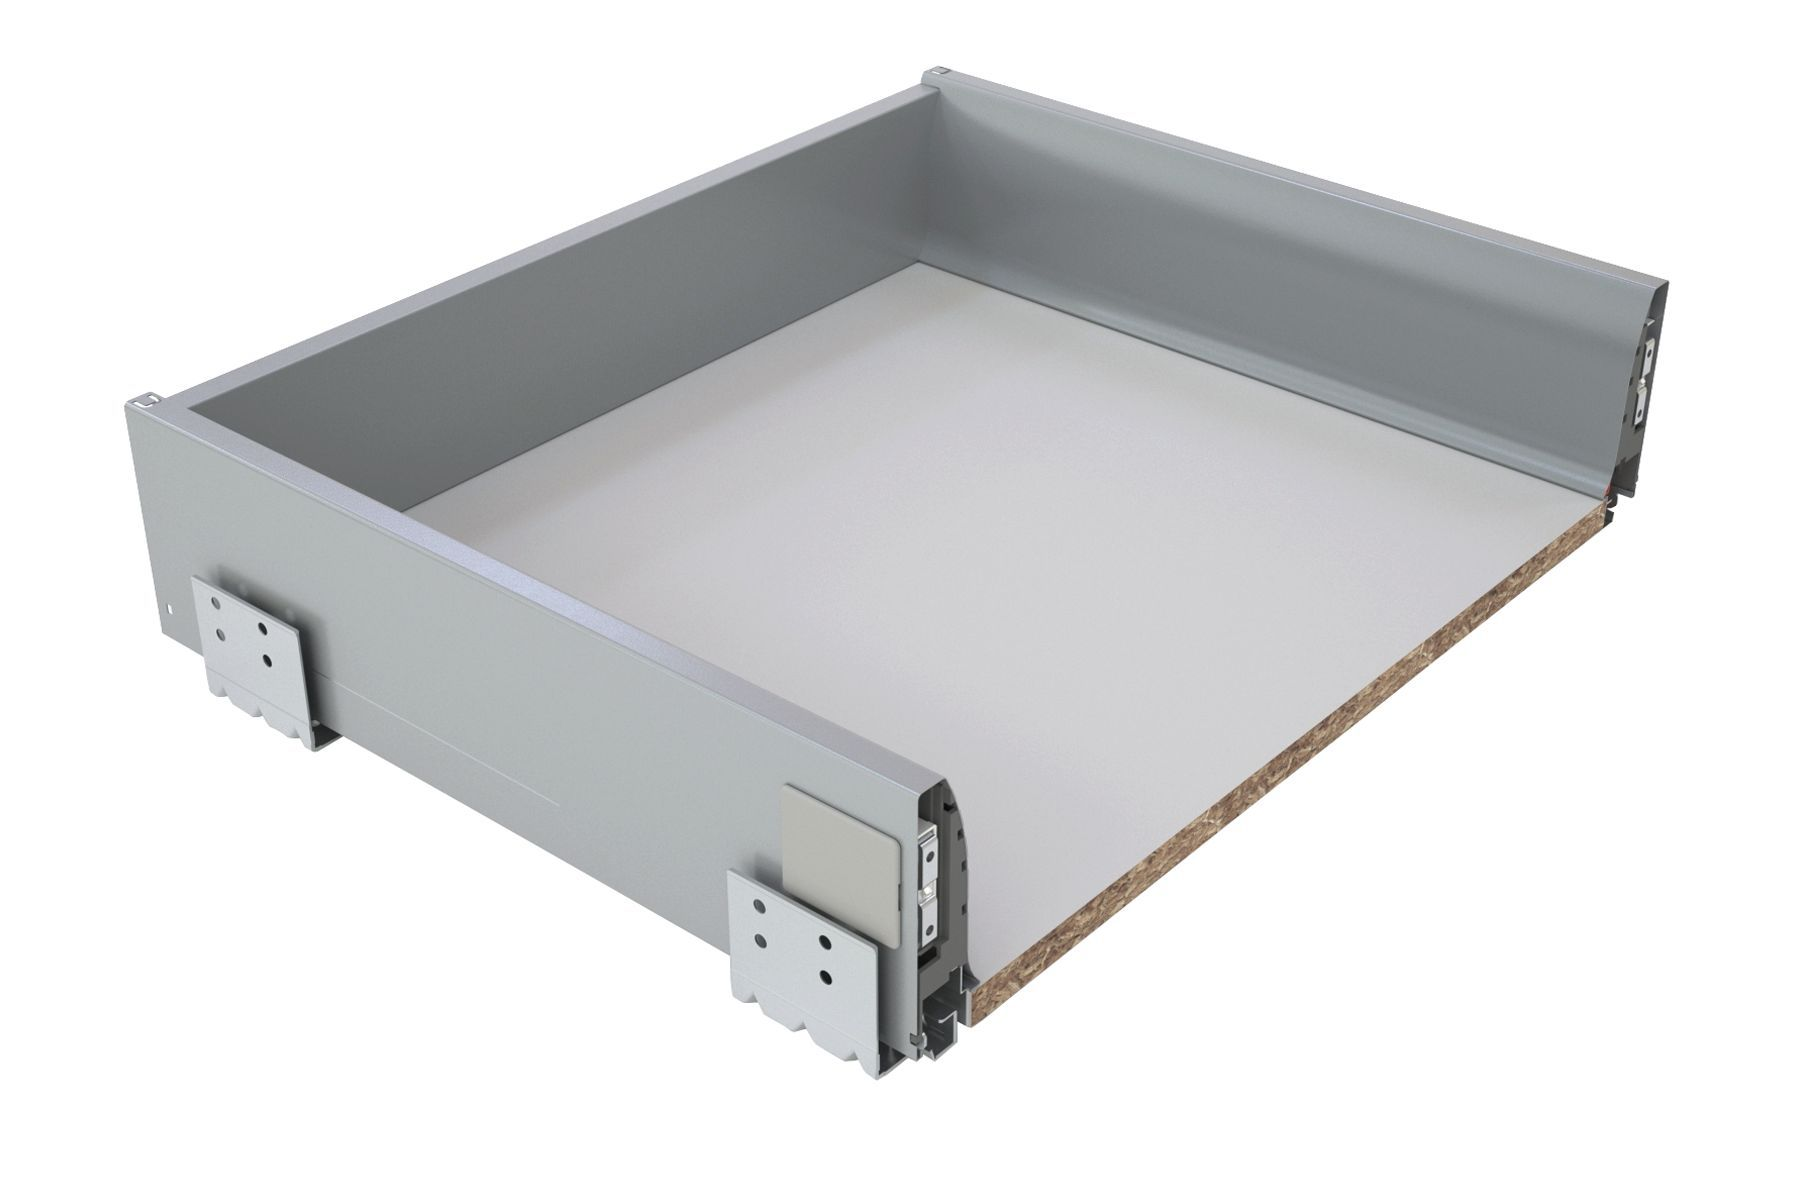 IT Kitchens Premium Framed Soft Close Drawer Box W 500mm